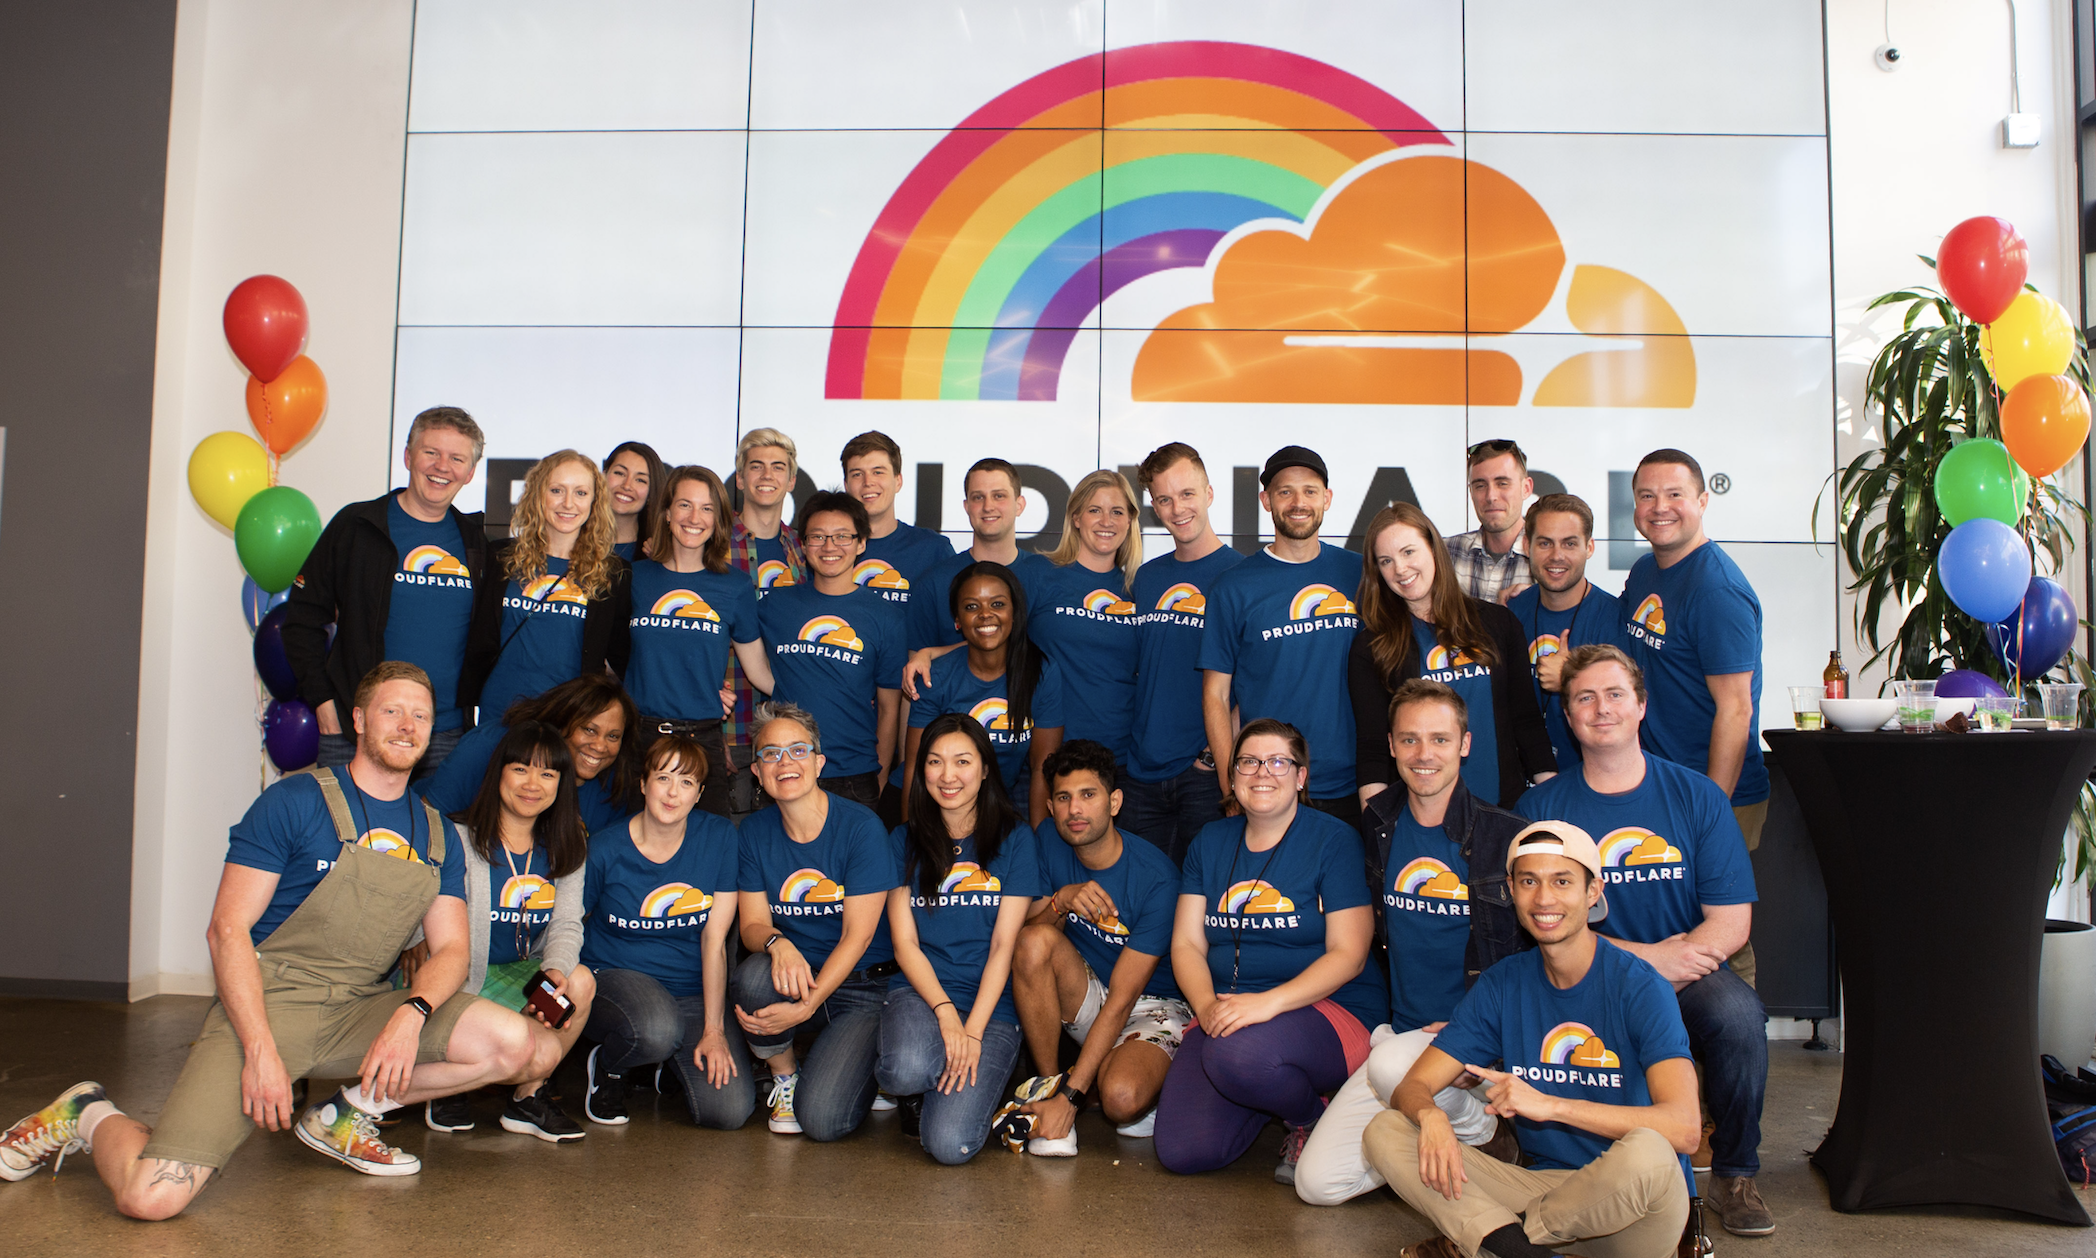 Introducing Proudflare, Cloudflare's LGBTQIA+ Group